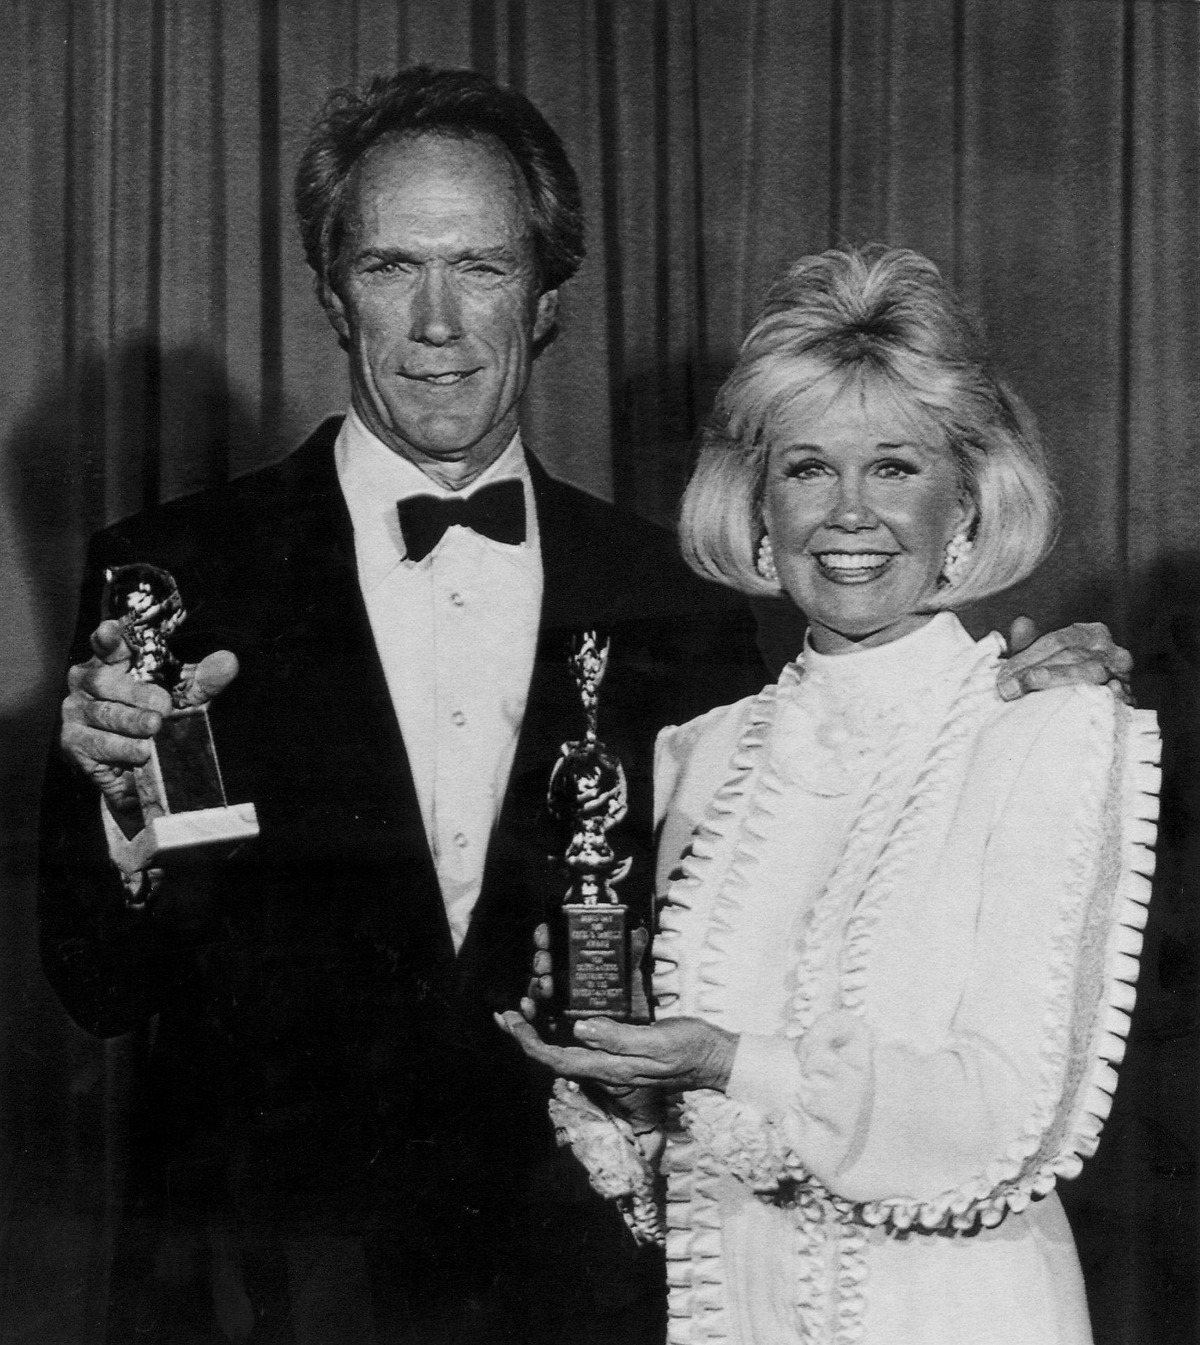 January 29, 1989: Veteran actor Clint Eastwood poses with actress Doris Day at the 46th annual Golden Globe awards in Beverly Hills.